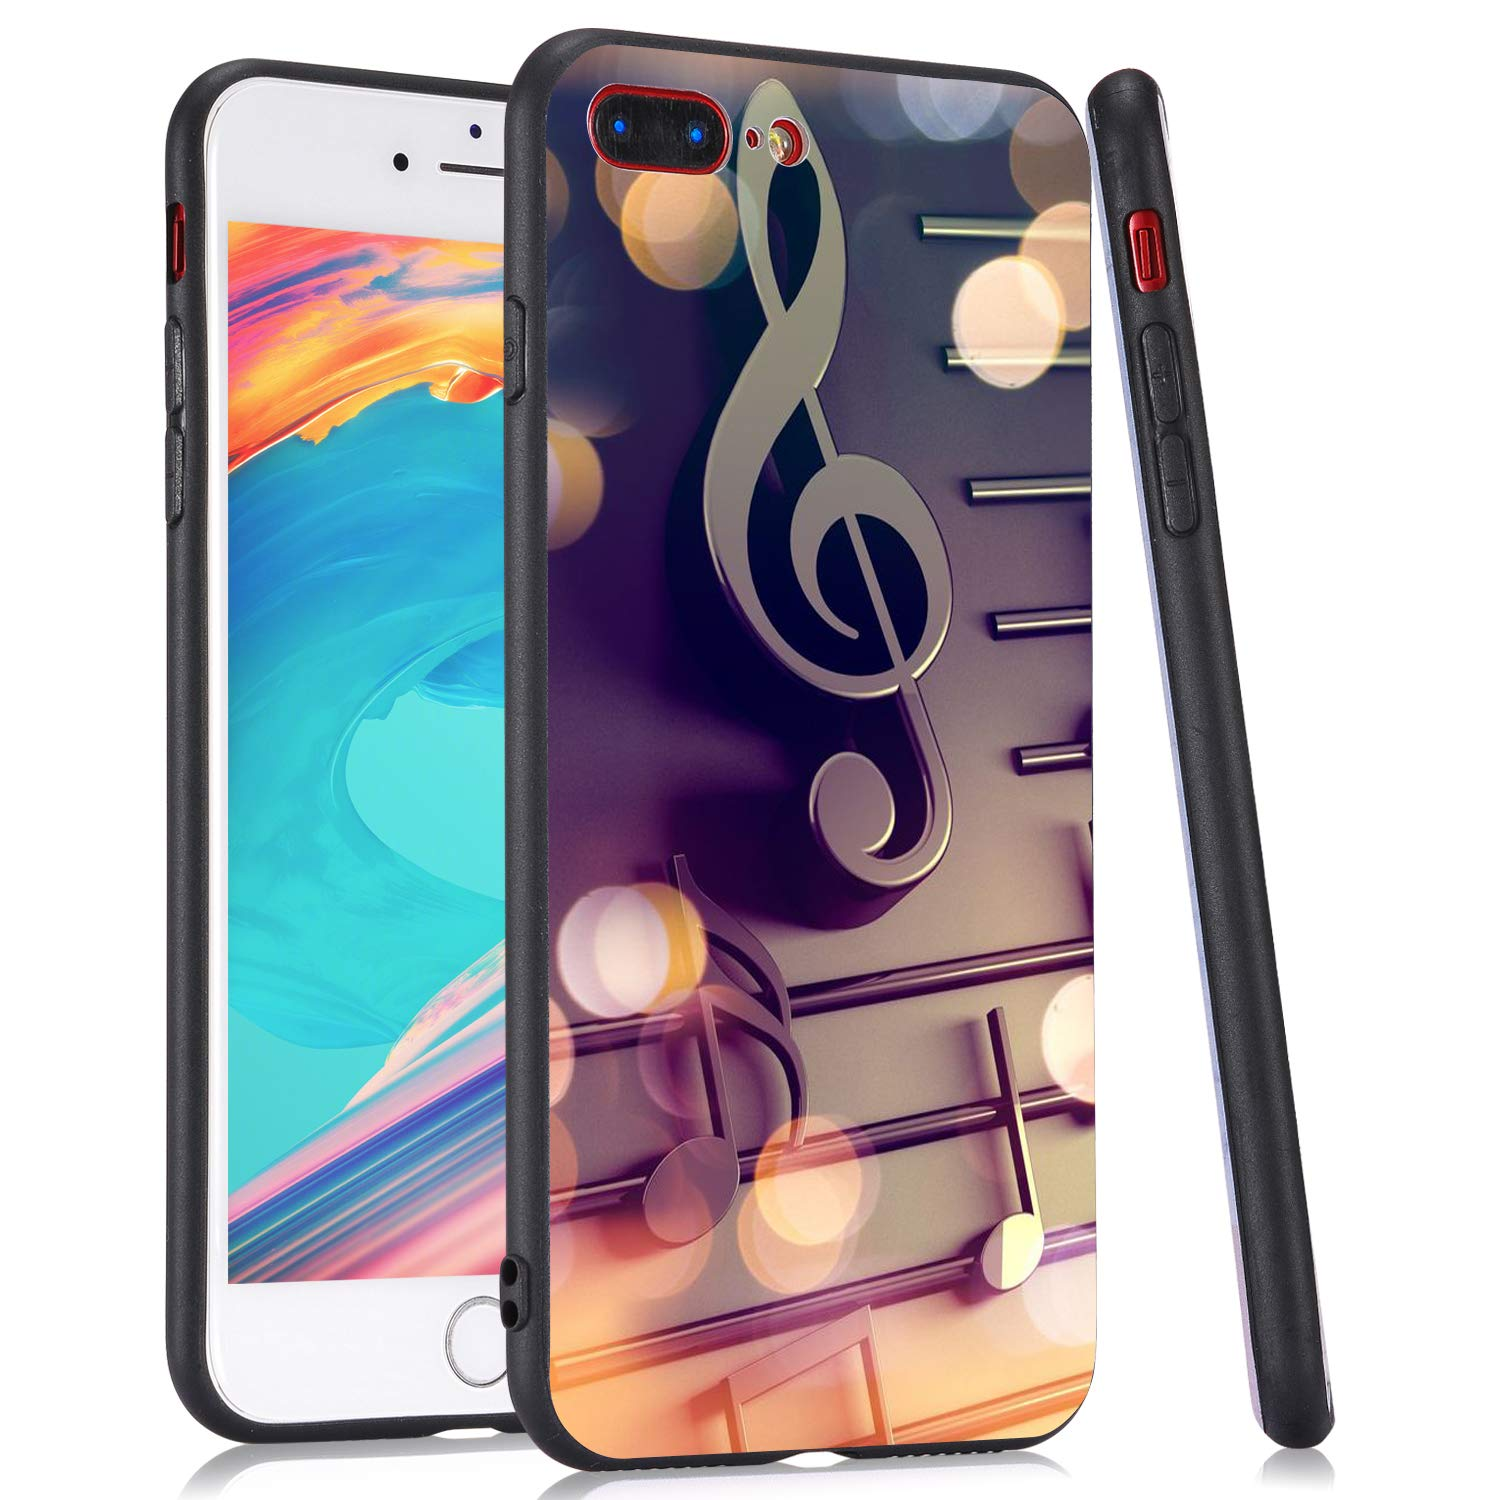 LuGeKe Music Note Phone Case for iPhone11,Cute Music Patterned Case Cover,HardPCBackwithTPUBumperAnti-Stratch Bumper Protective Cute Girls Phonecase